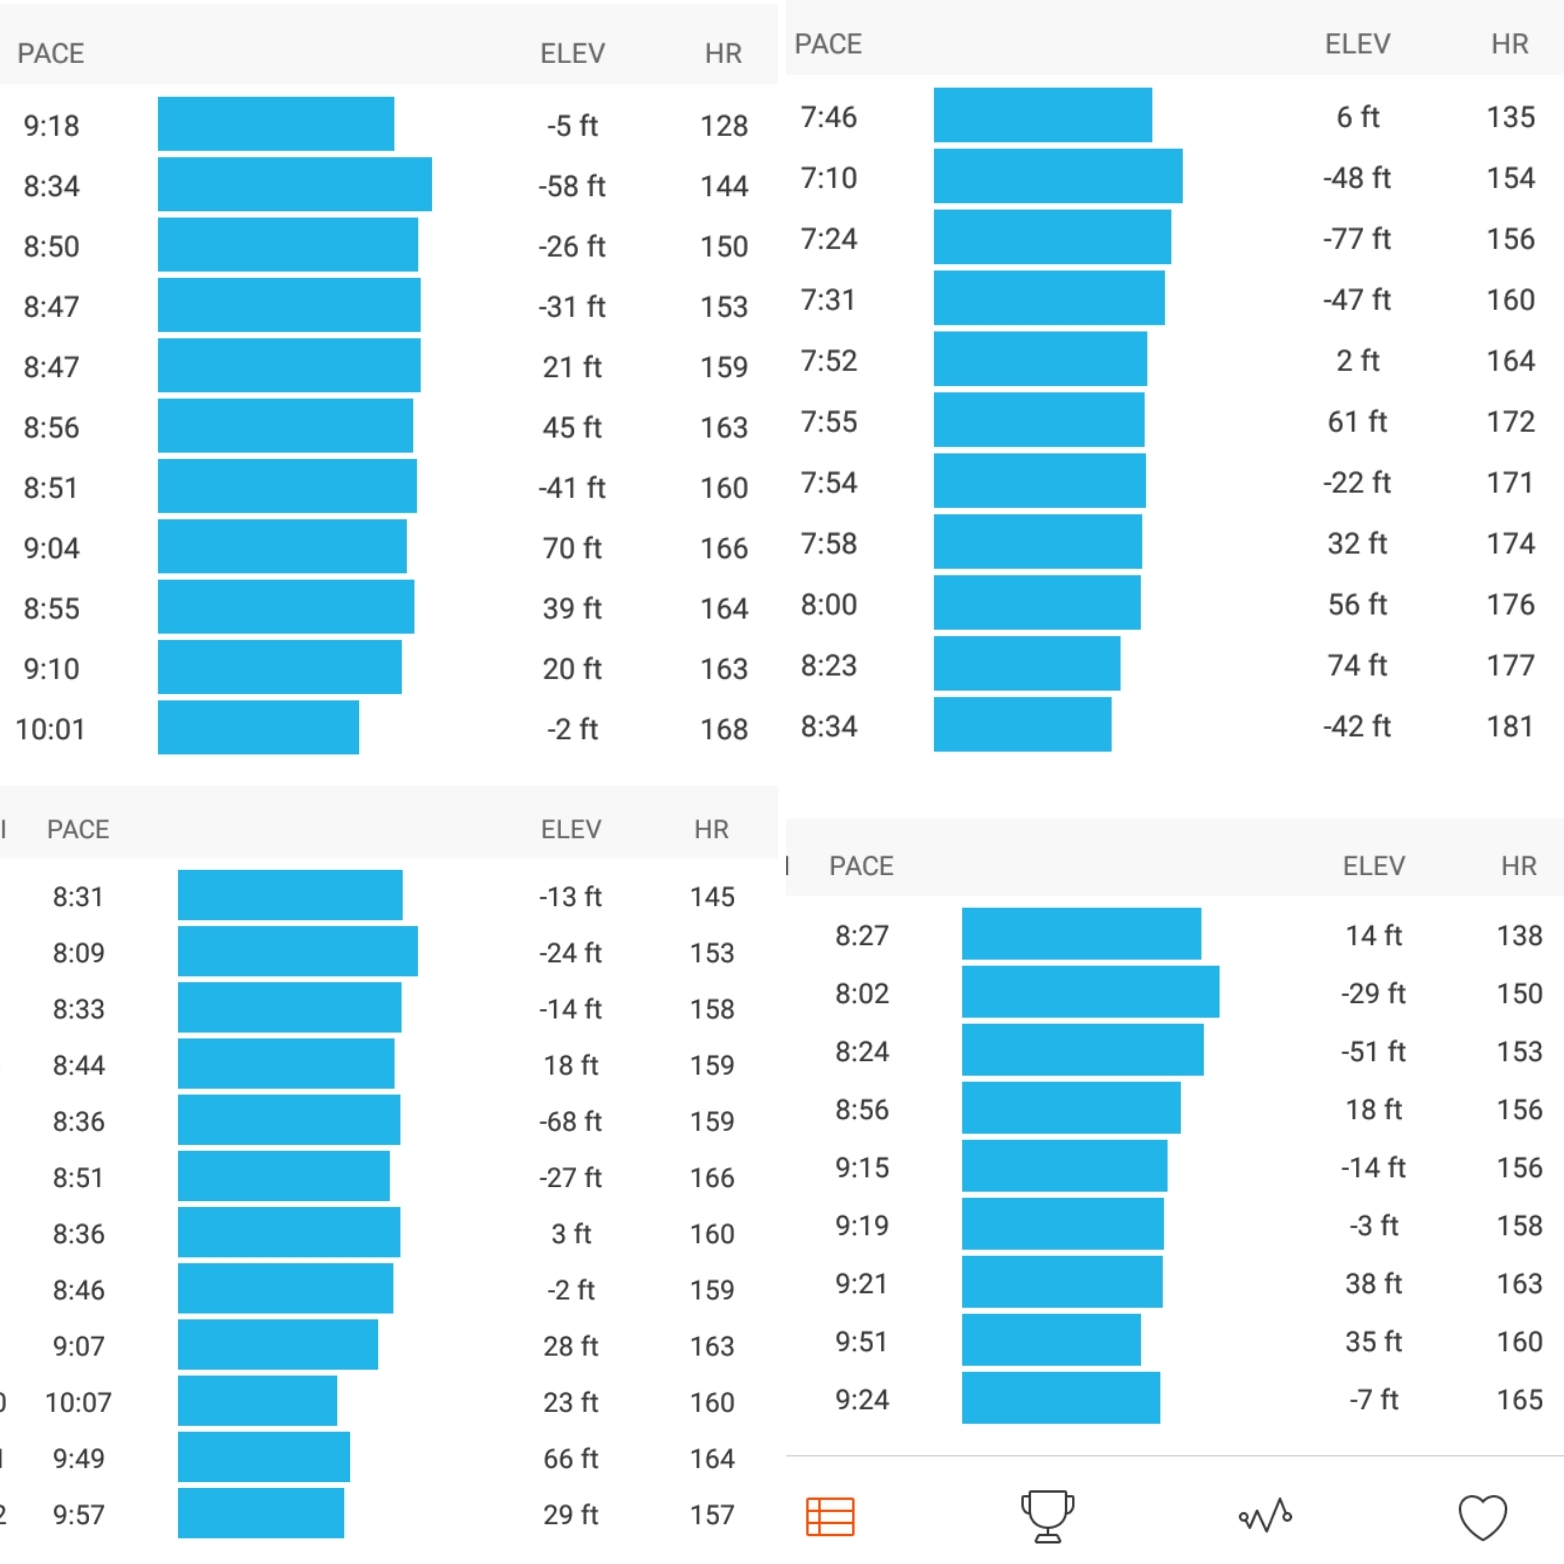 HR and pace data from 4 different runs for this runner reveal the characteristic cardiac drift even when pace is near equal or slowing at the end. On the second run (top right), it's clear how HR into the 170s begins to force pace to decline. Without surprise, these were all days with temperatures over 90 degrees.